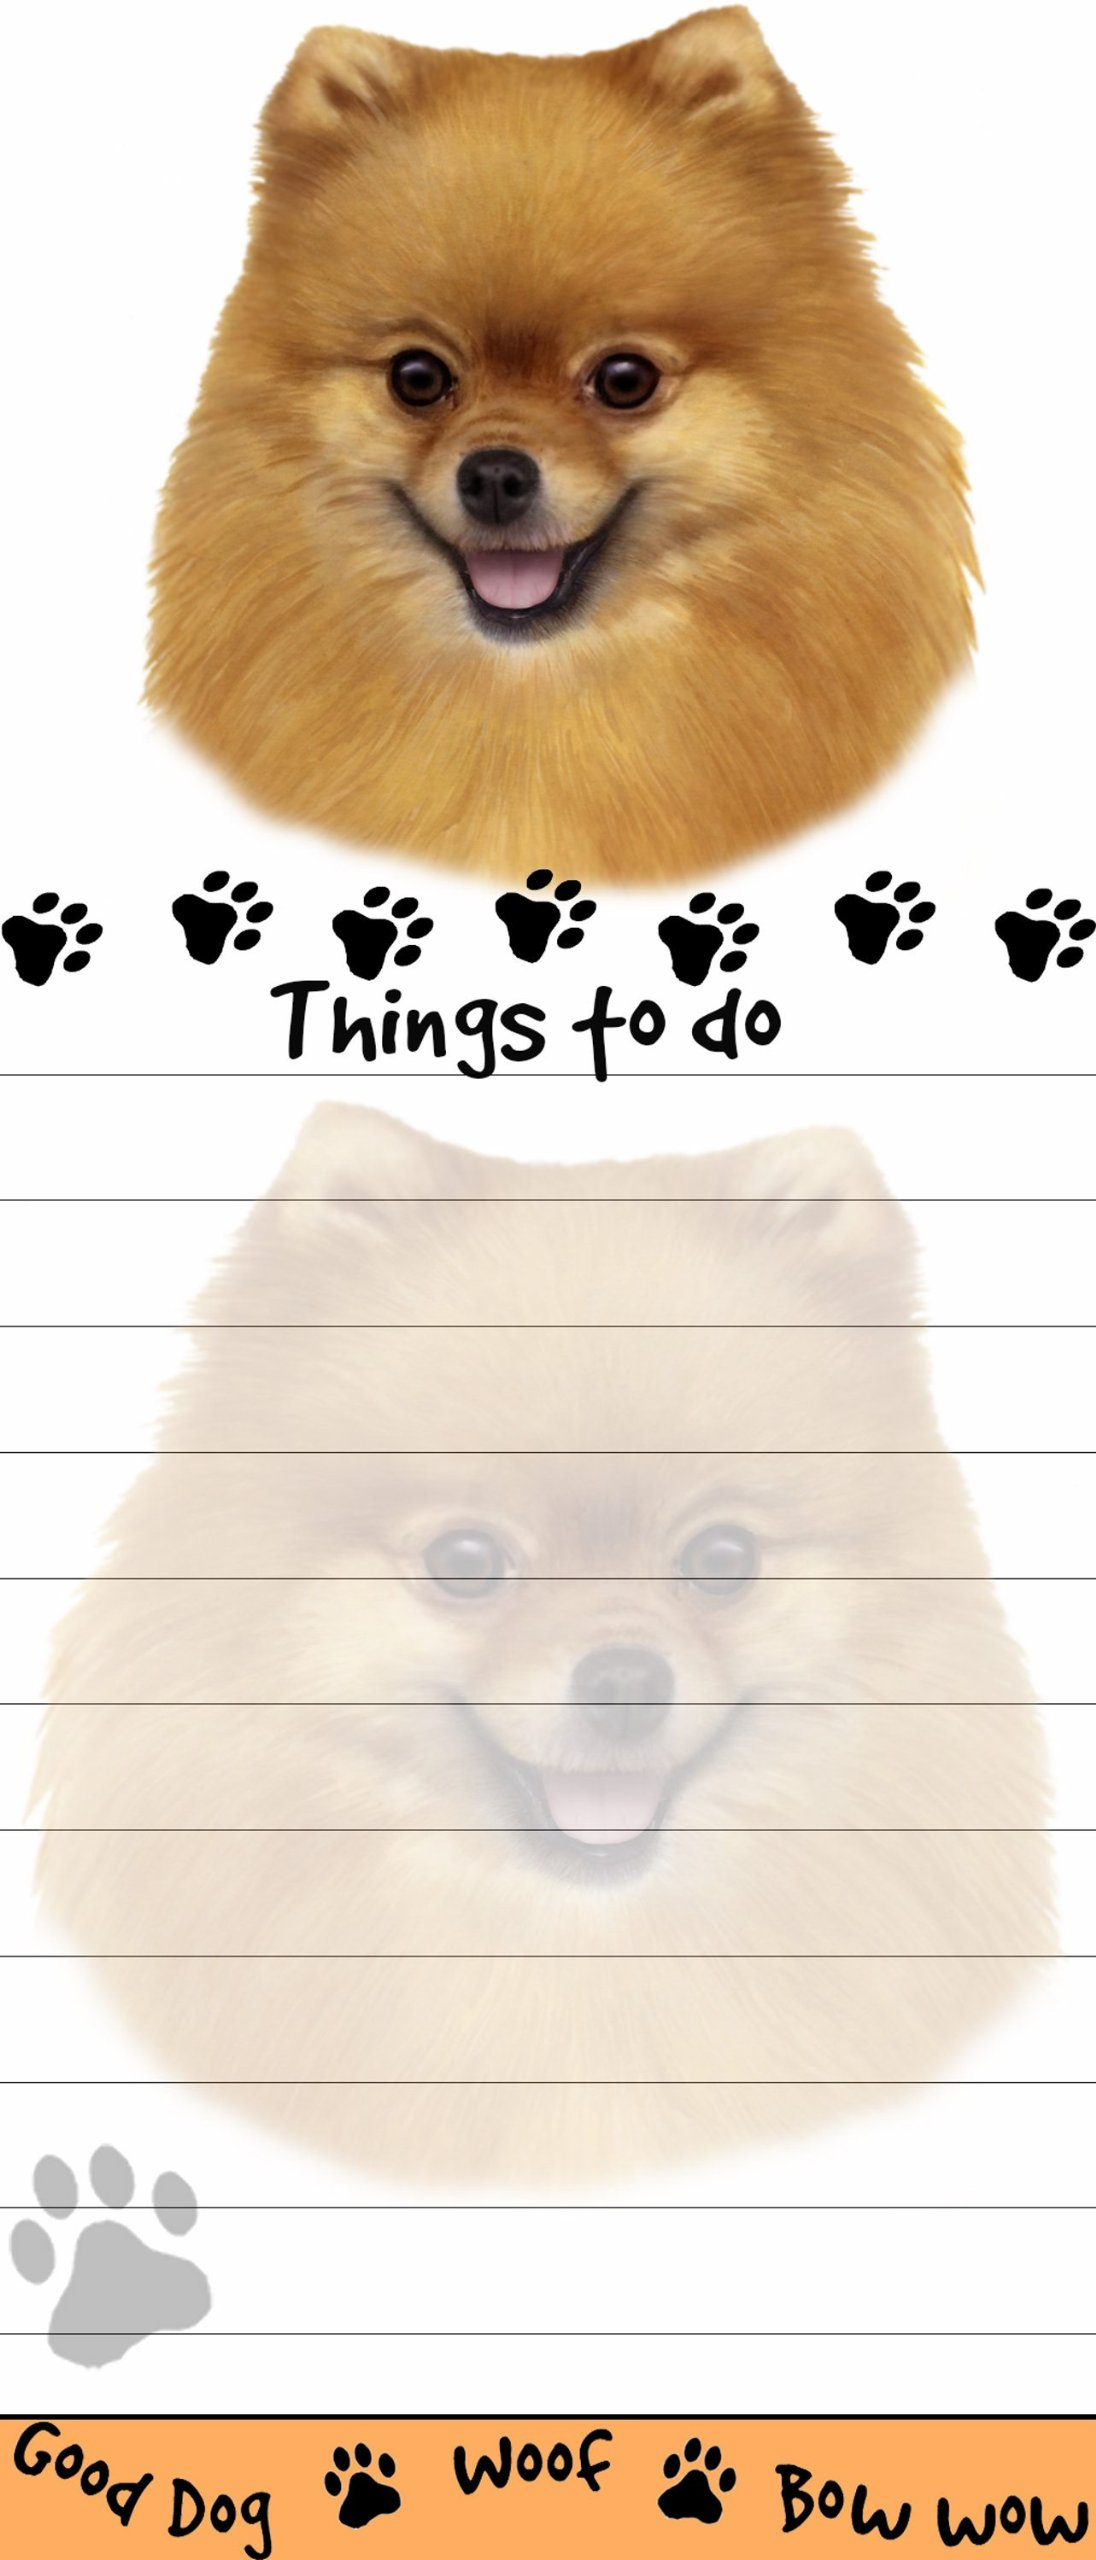 """Pomeranian Magnetic List Pads"" Uniquely Shaped Sticky Notepad Measures 8.5 by 3.5 Inches 1"